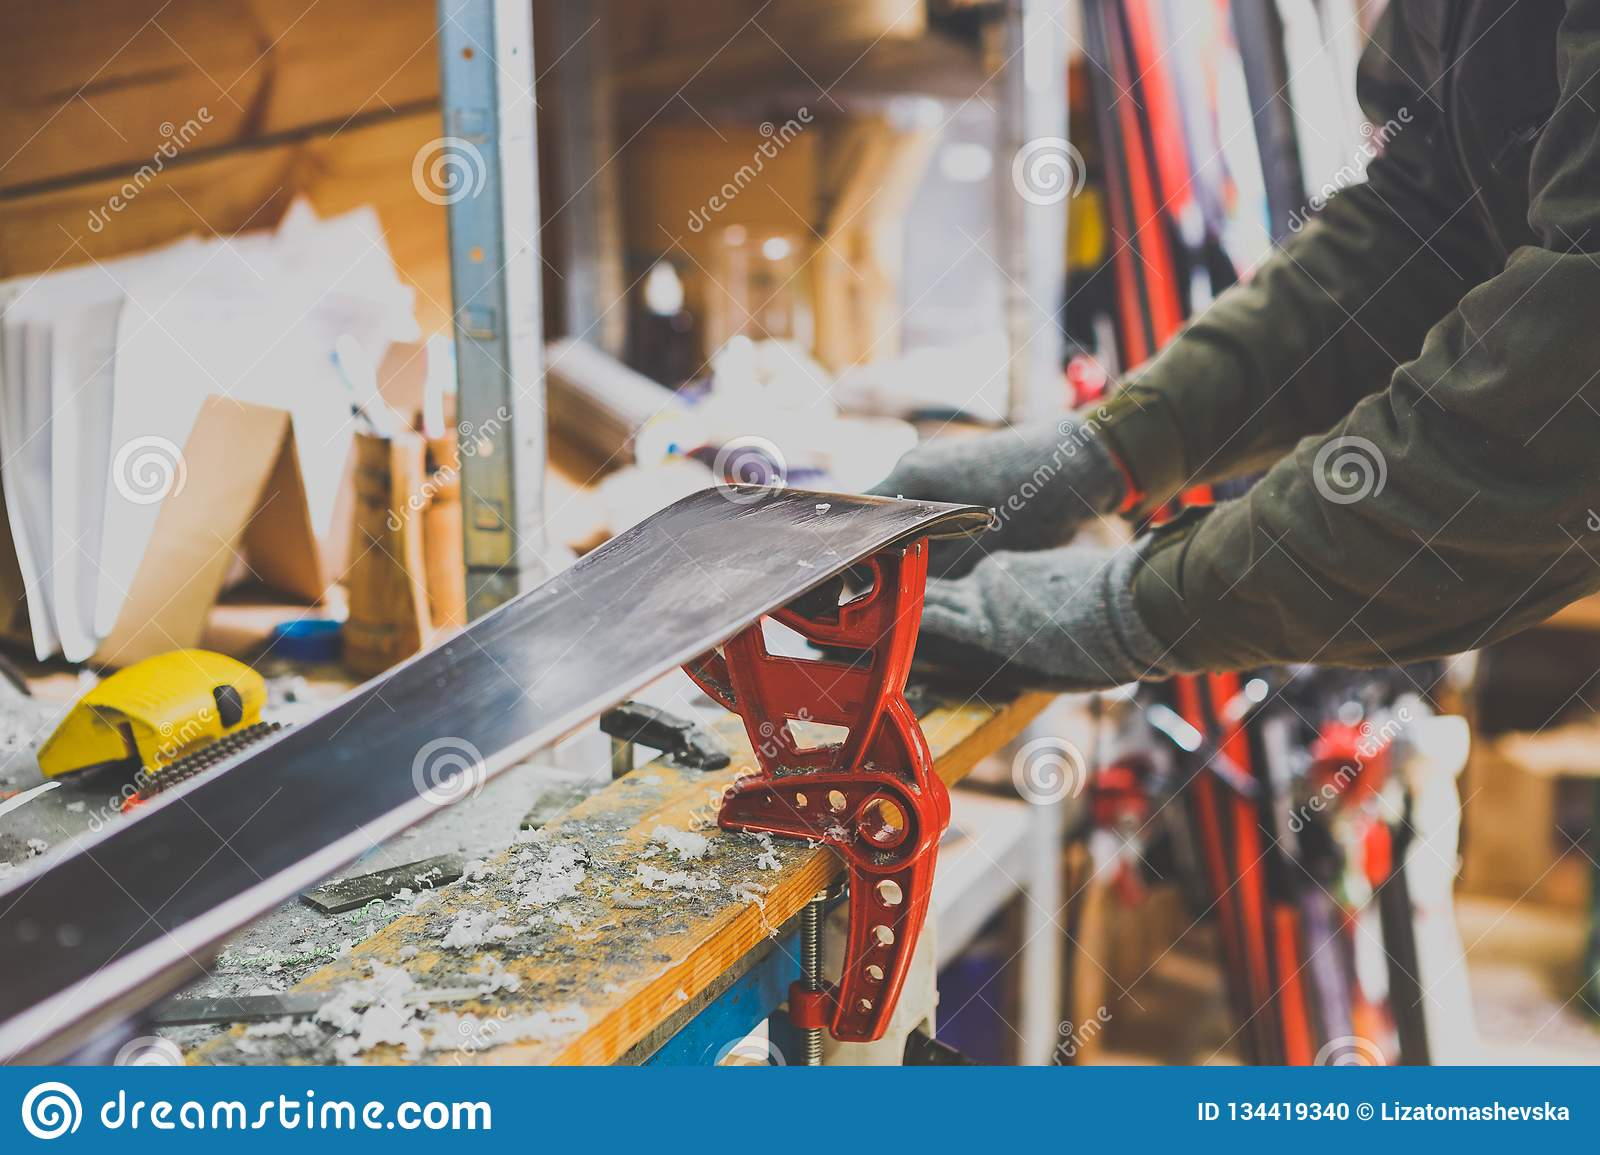 Theme repairs and maintenance of skis. The male worker is repairing work clothes, applying wax on the sliding surface onto skis